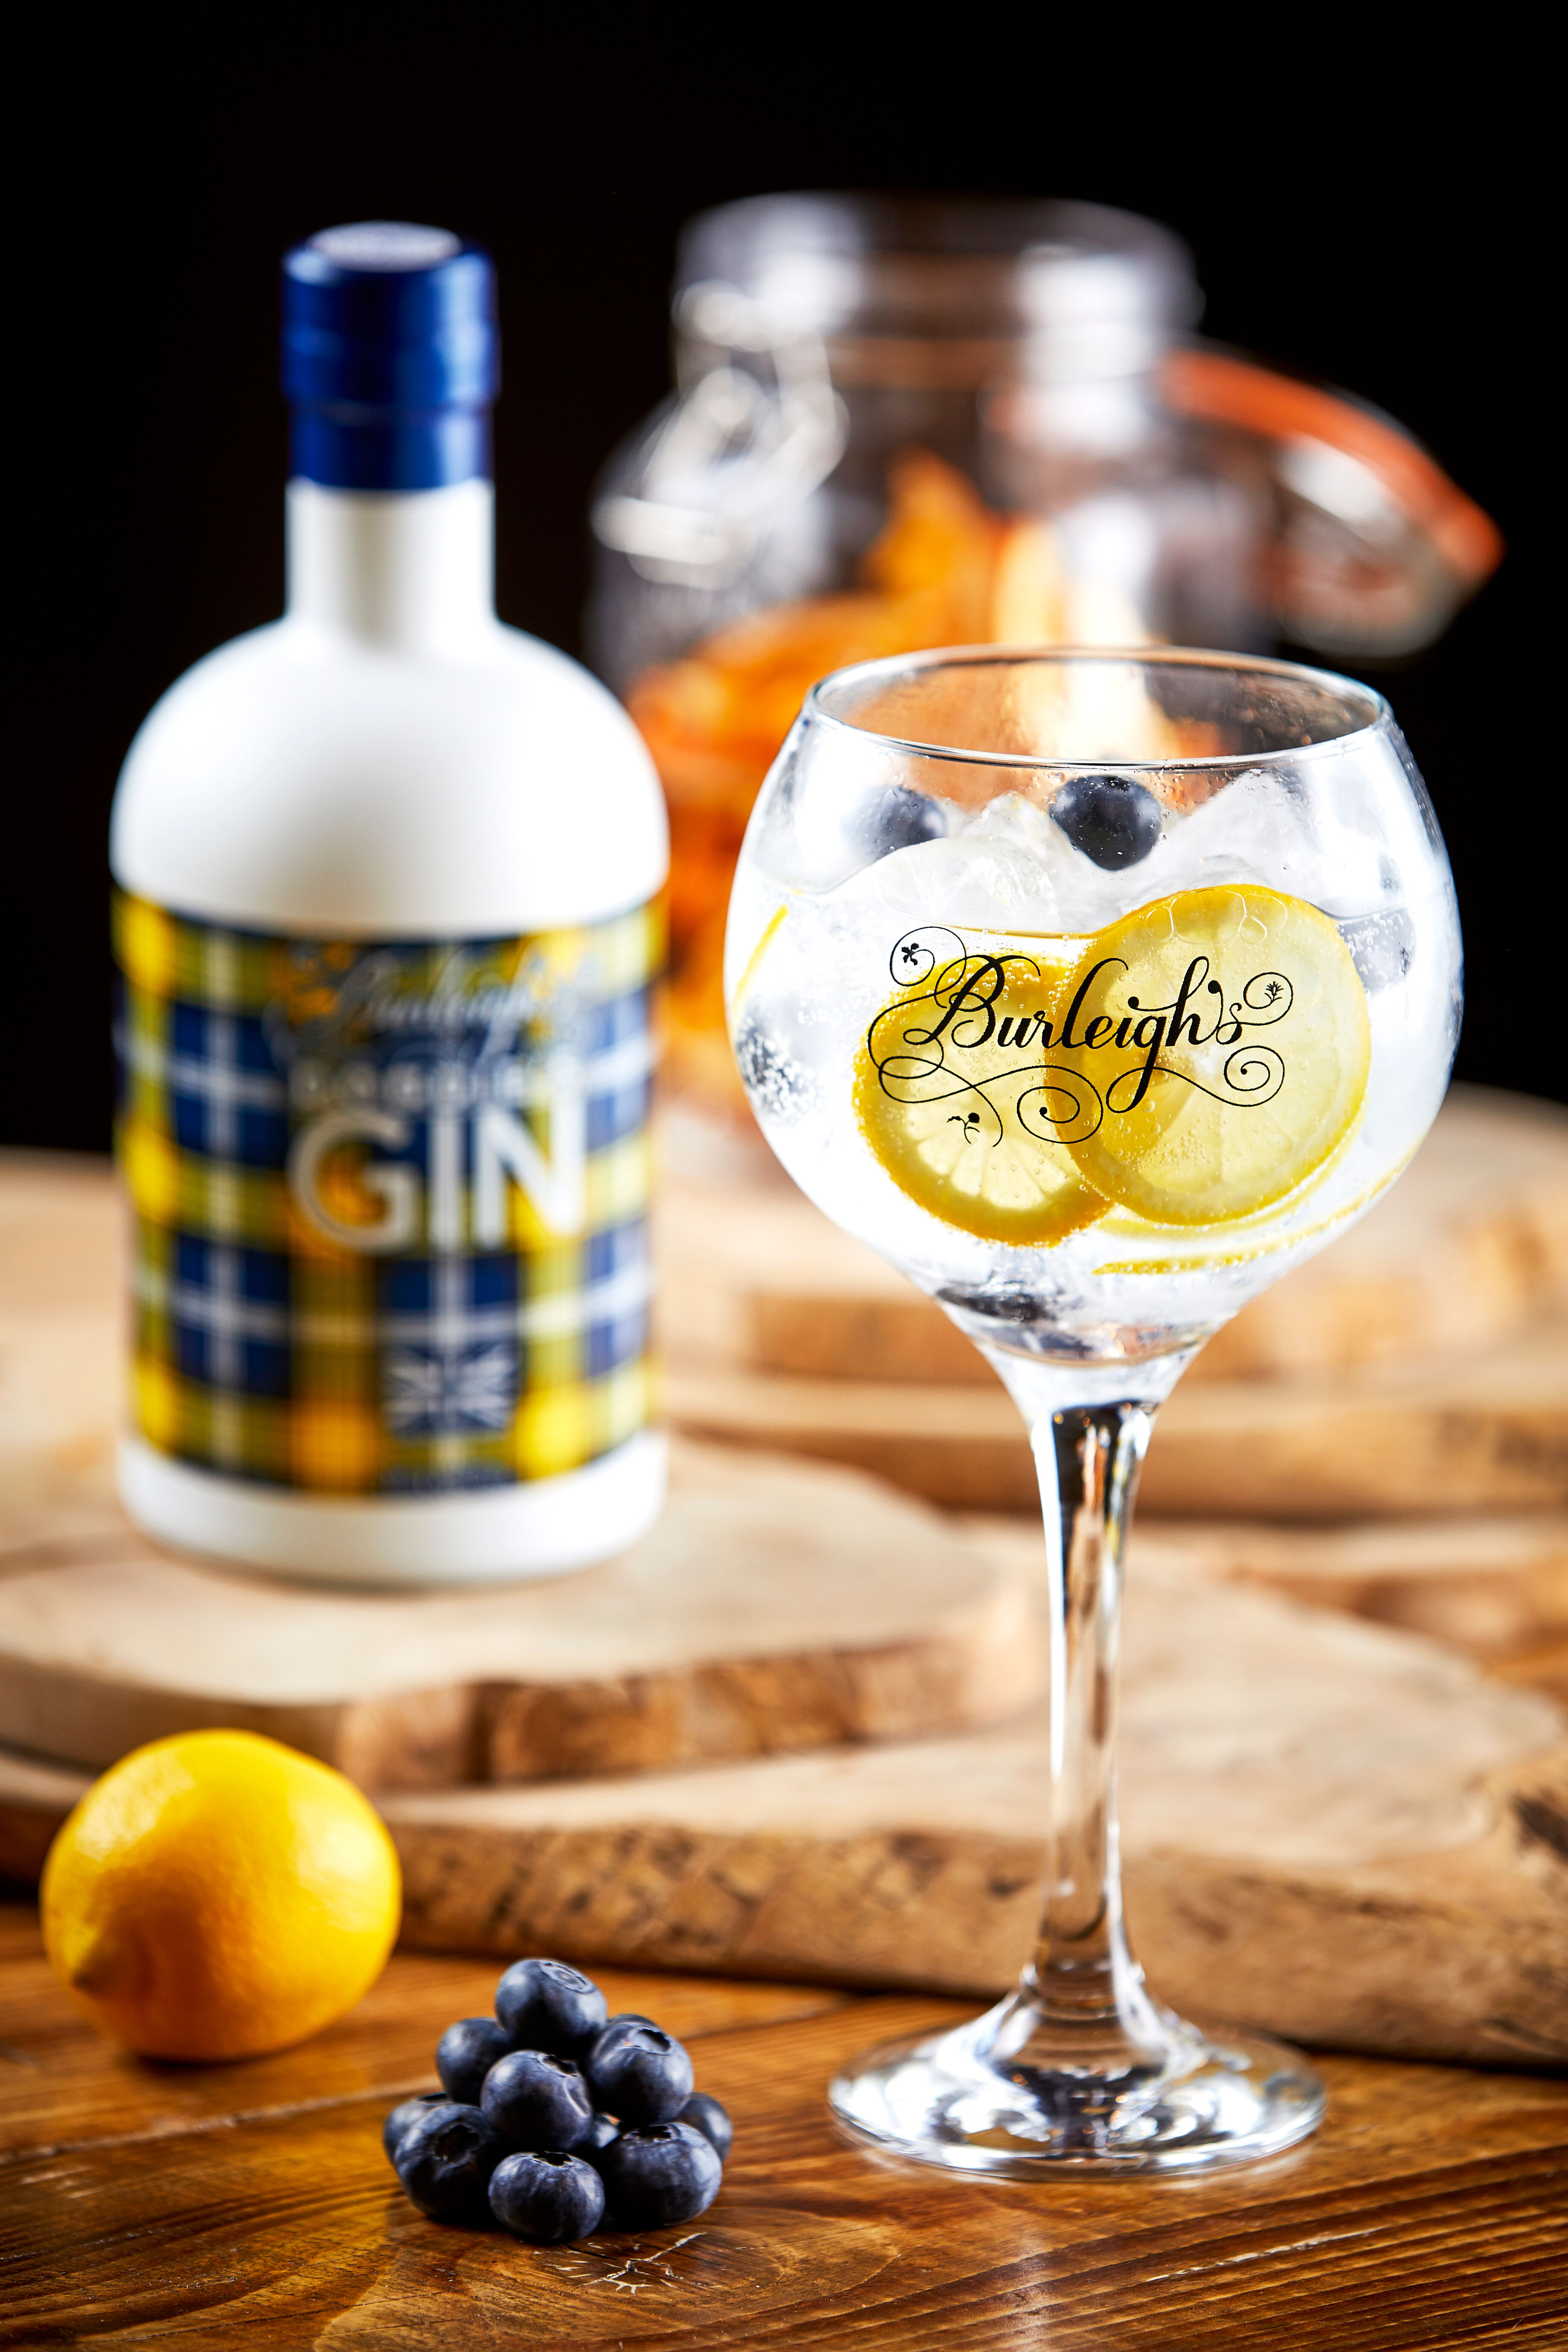 Burleighs launch new gin with rugby legend Doddie Weir – COOL AS